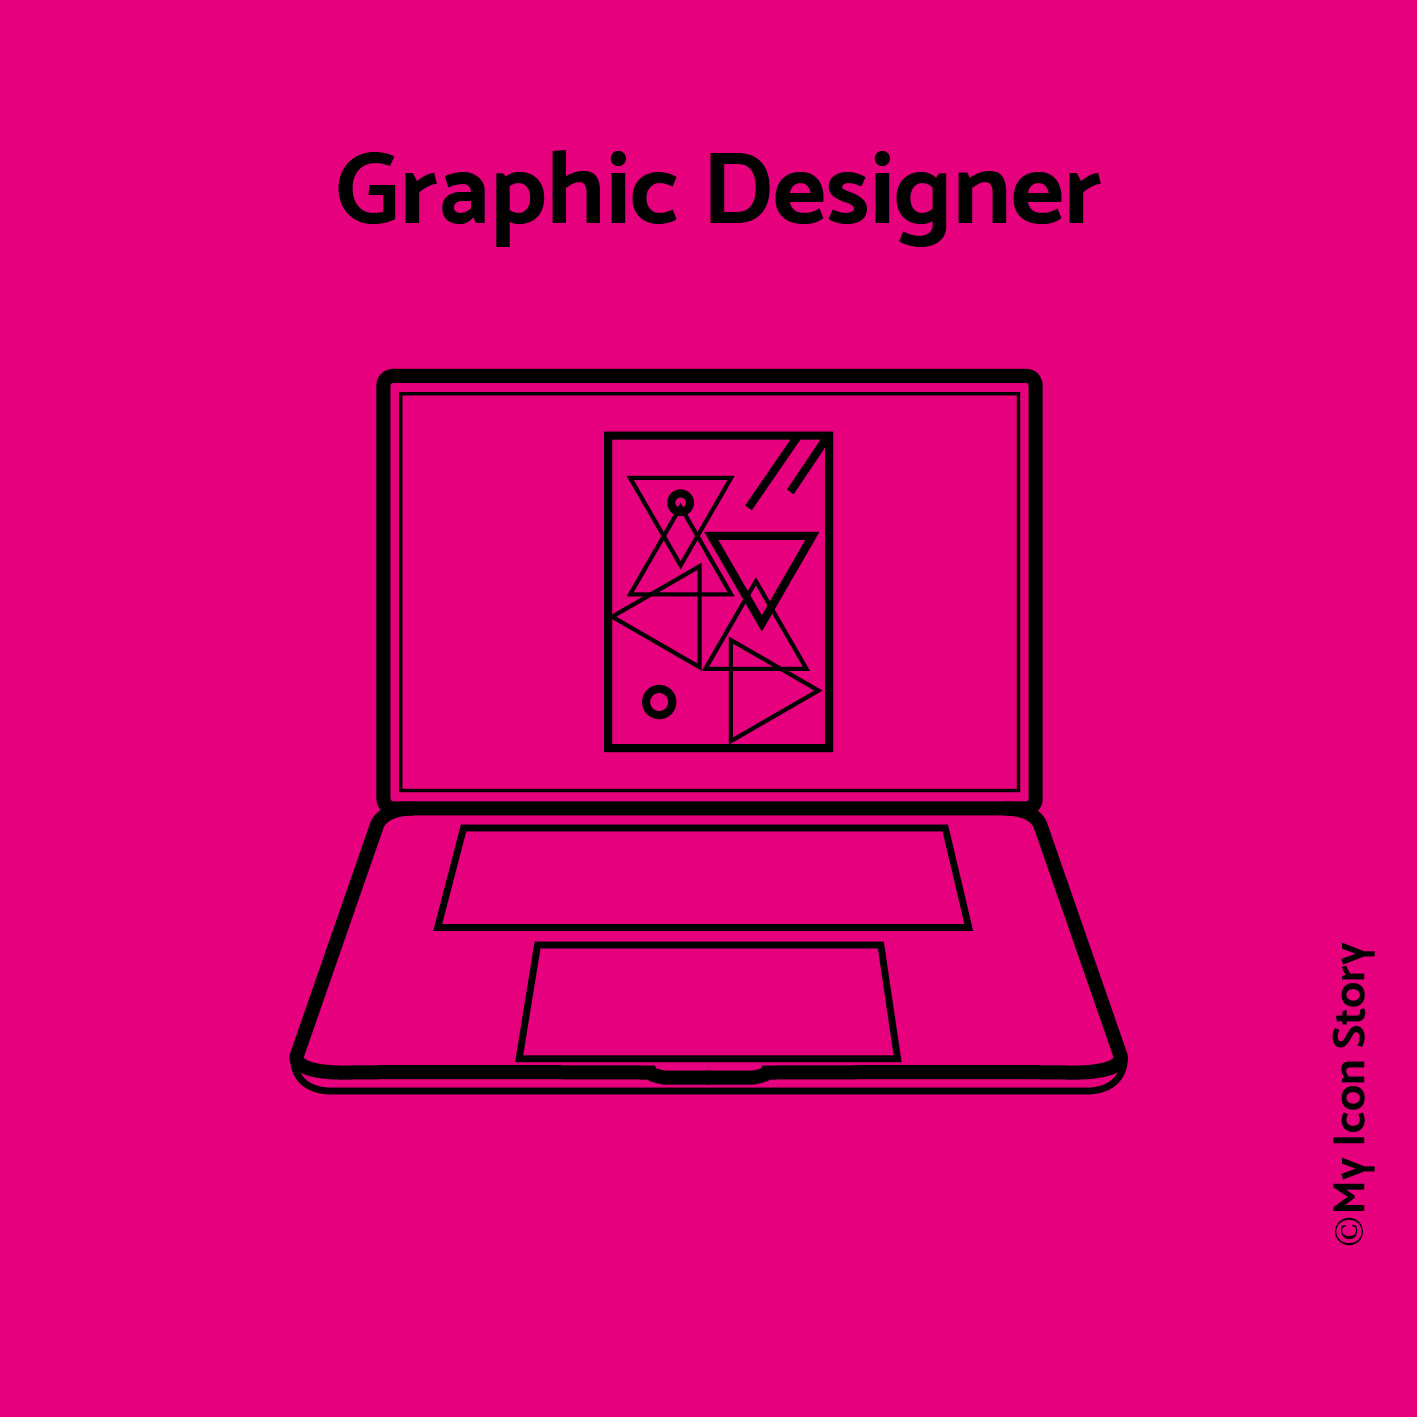 icon of a laptop featuring a graphic design shapes